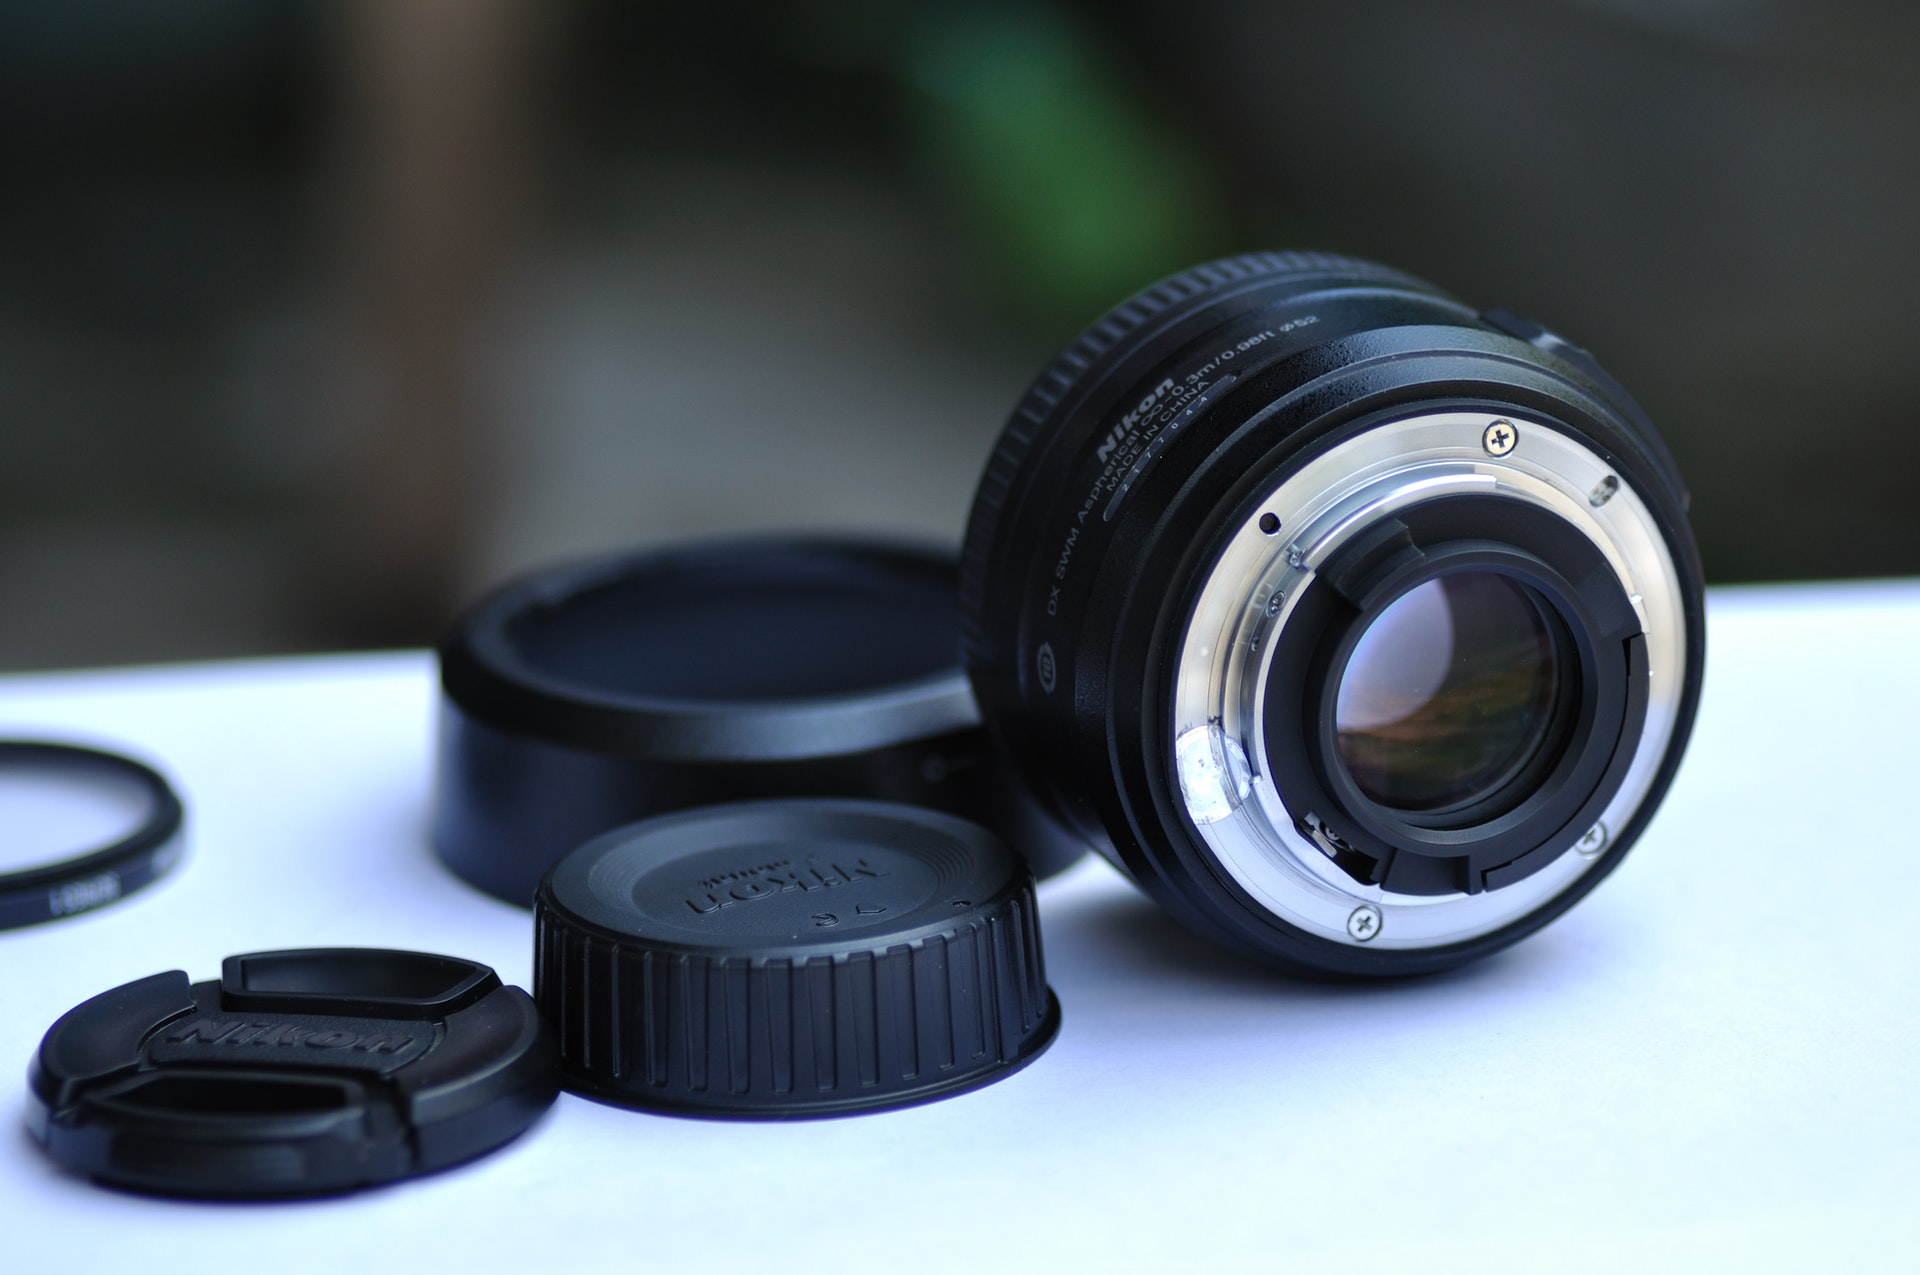 The Right Lens for Advanced Digital Photography